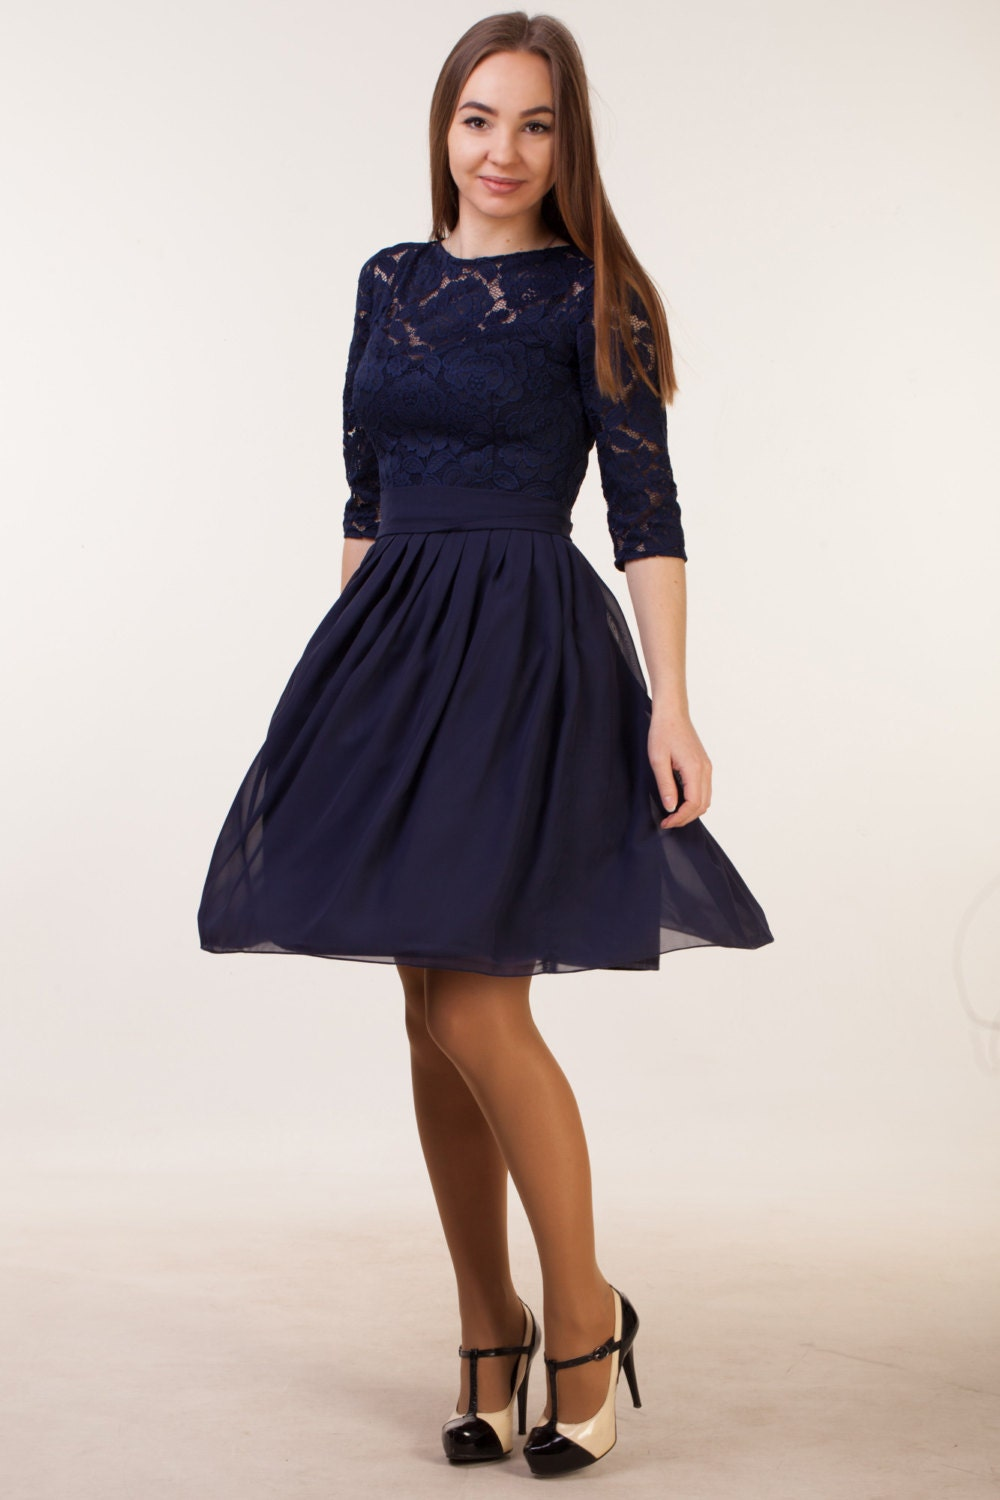 Short navy blue dress with sleeves navy blue bridesmaid dress description short lace navy blue dress ombrellifo Gallery